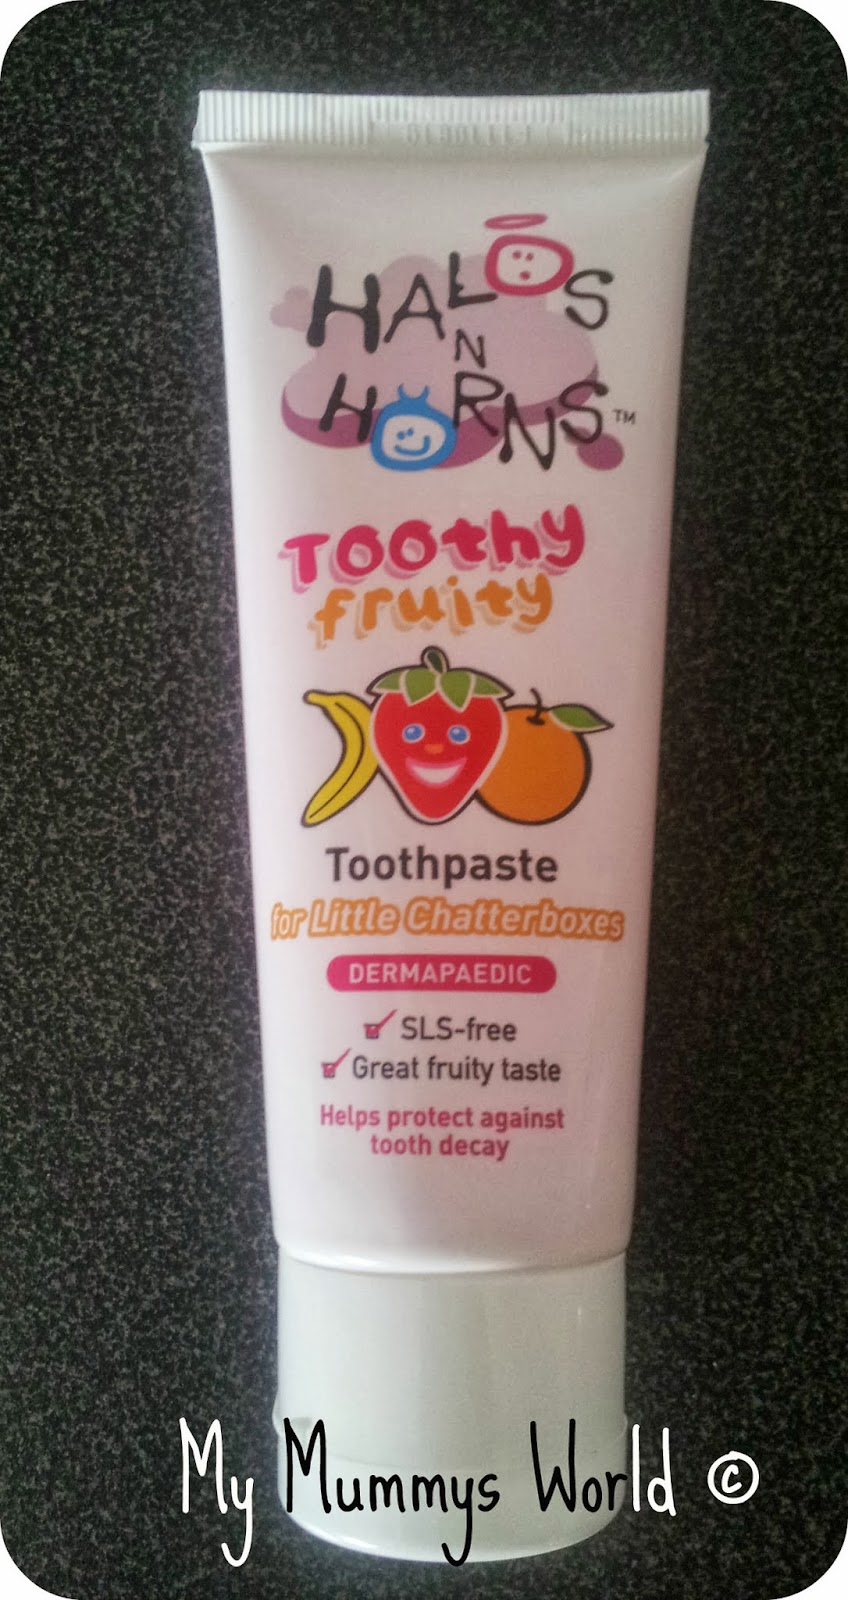 Halos N Horns Toothy Fruity Toothpaste. My Mummys World